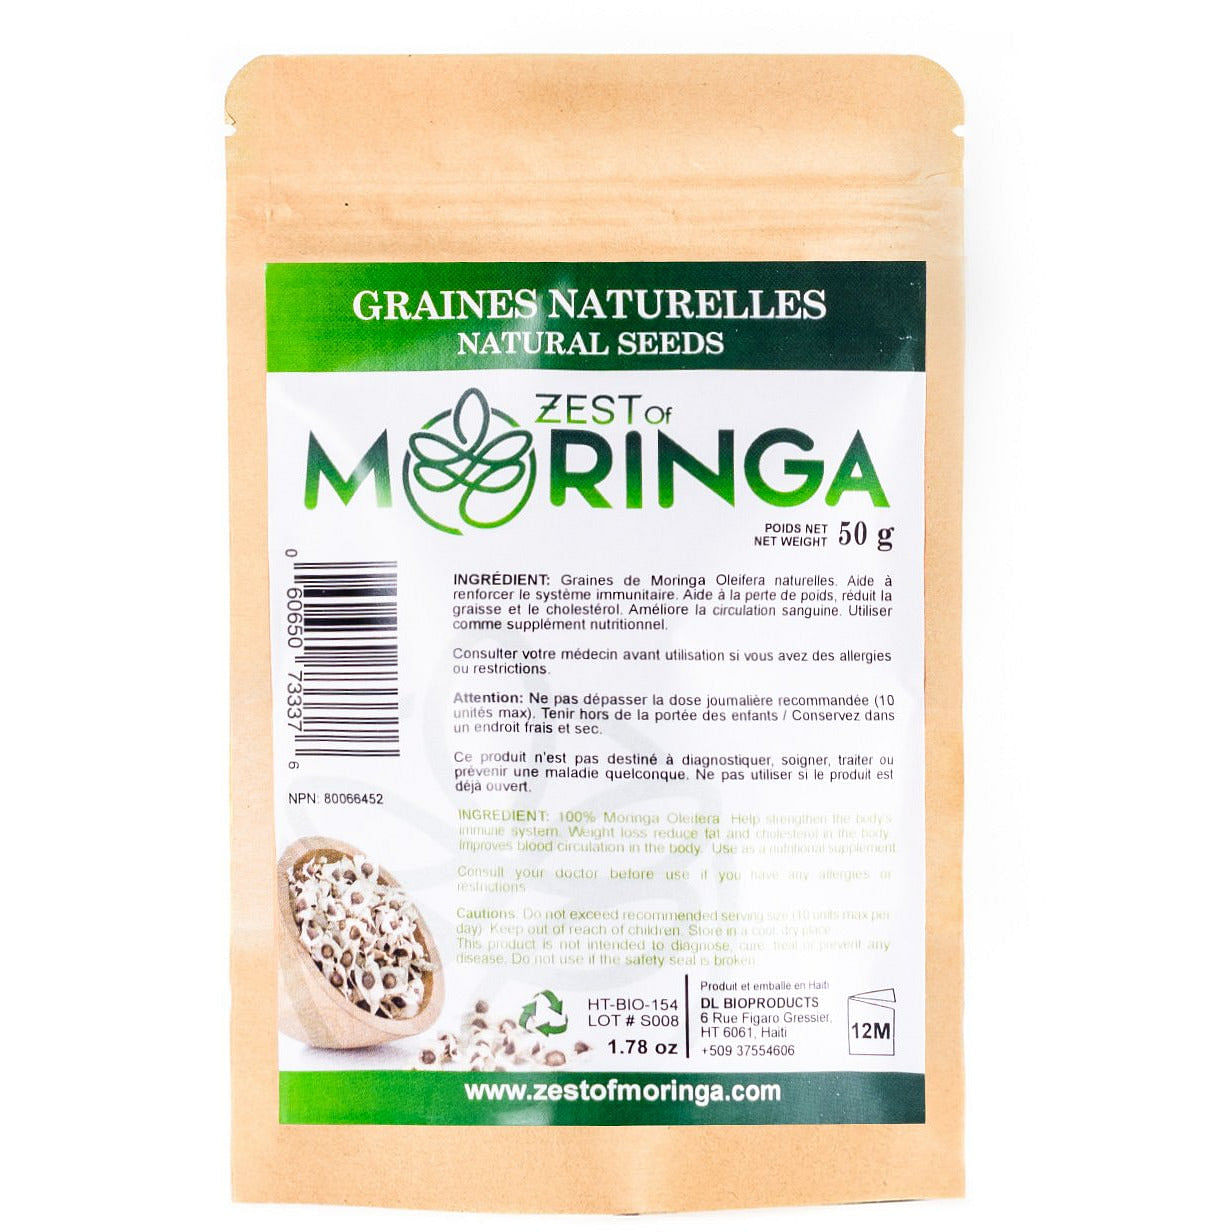 Natural Oleifera Seeds, Healthy Snack With Fiber, Amino Acids & Natural Sugar 50g - Zest Of Moringa